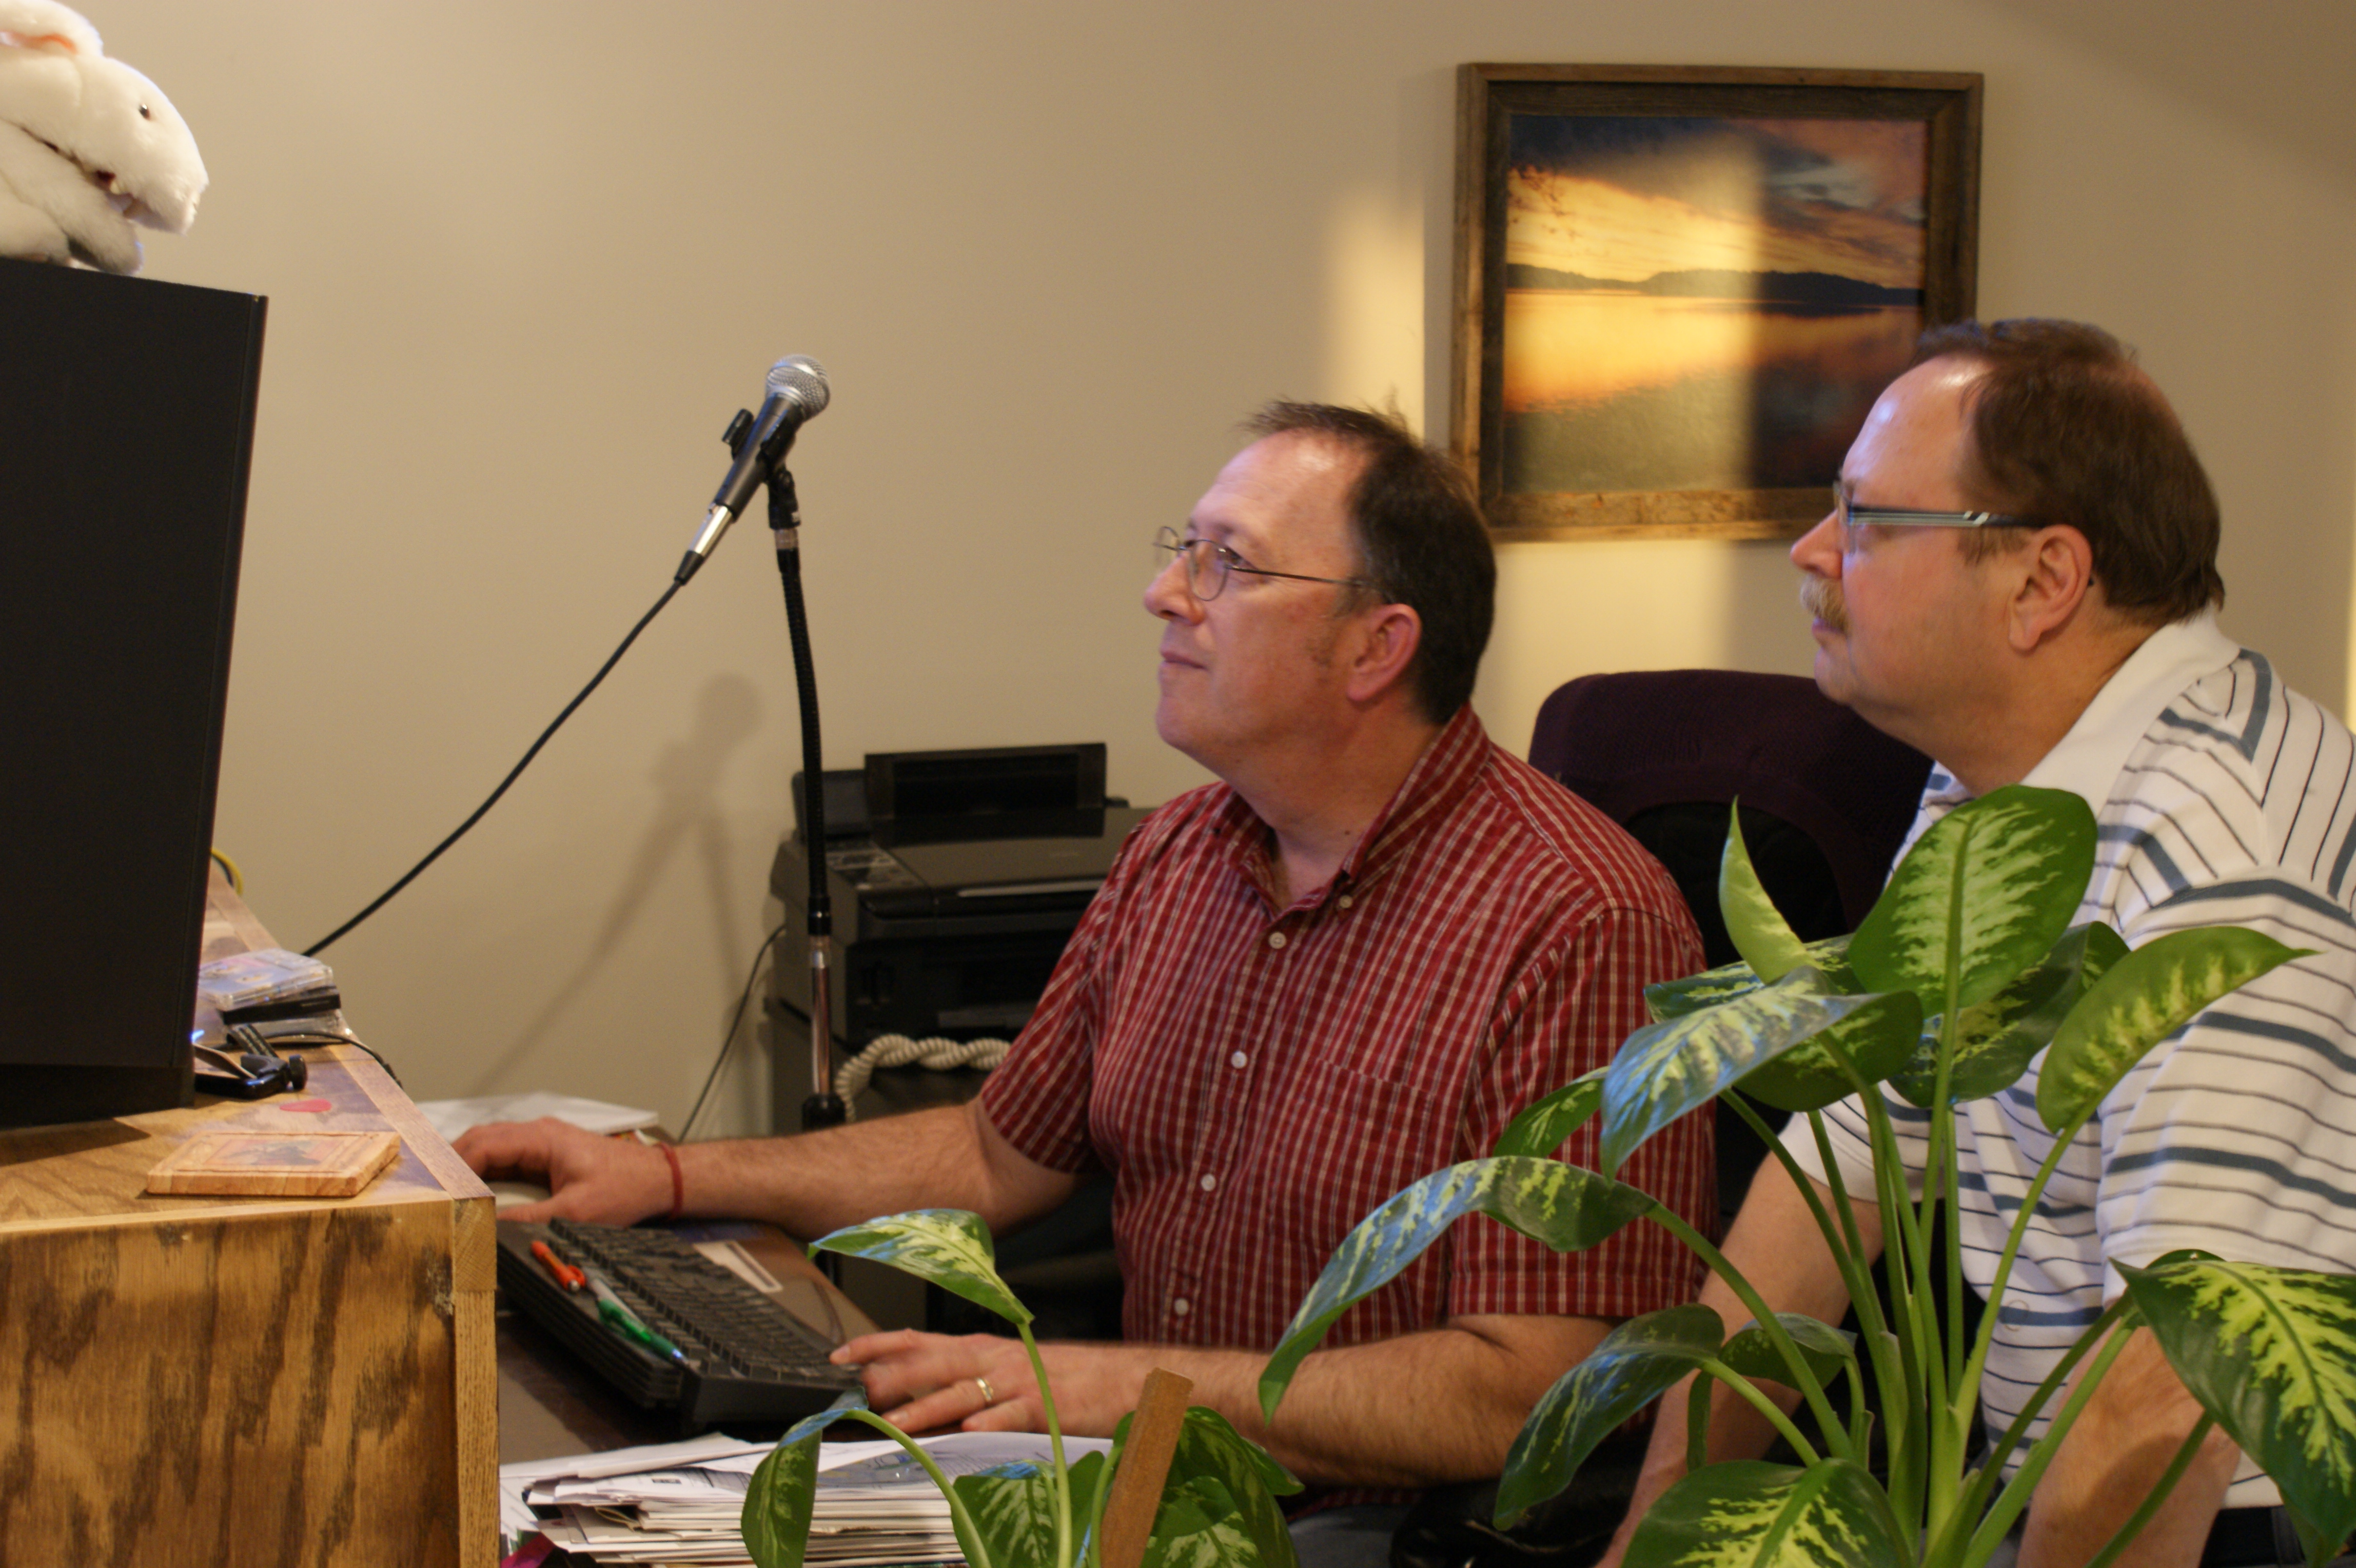 Mike Kronschnabel and Bob Zagozda listening to Bob's tracks for the Keepers of Honky CD